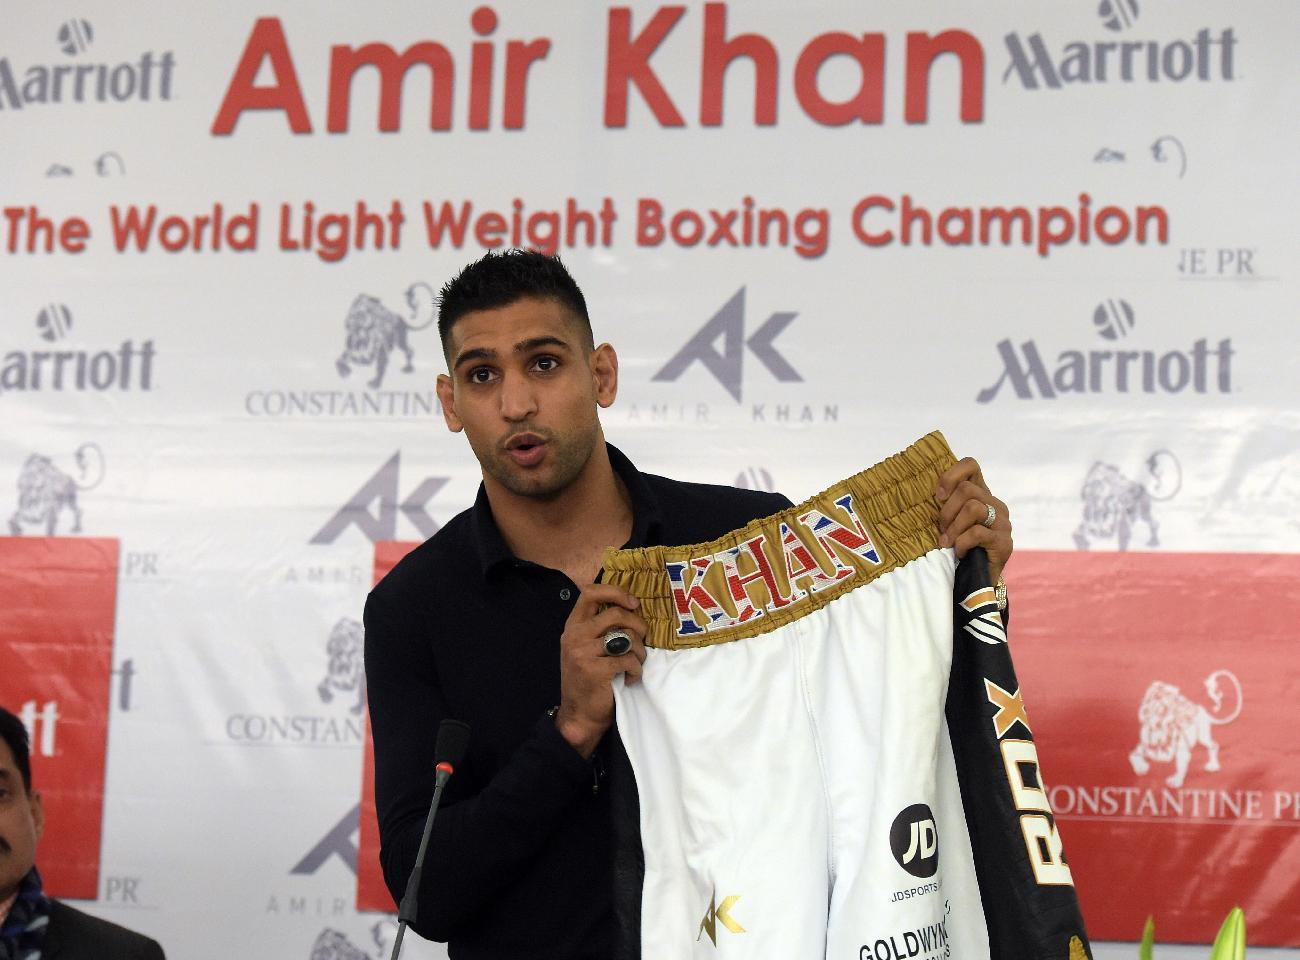 Amir Khan wants Mayweather fight